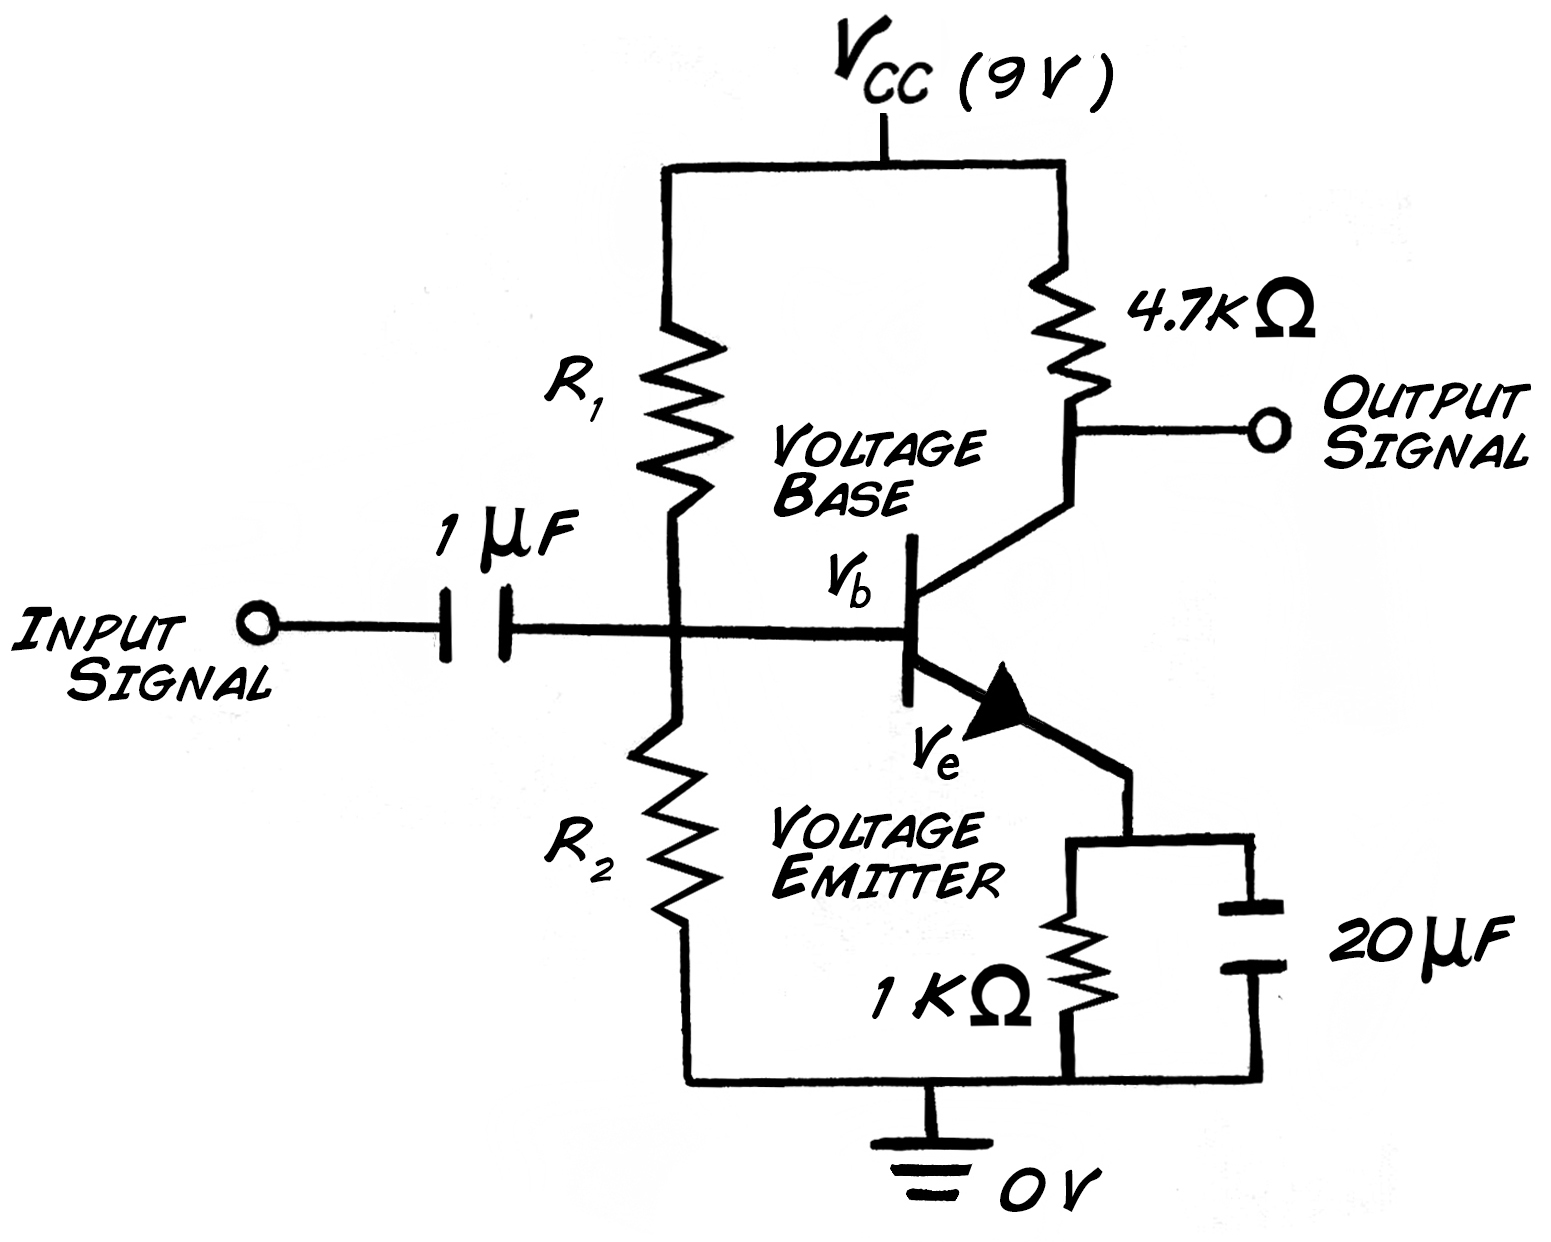 Experiment Transistor Circuit Design Build Notes Negative Power Supply Schematic Click For Full Setting The Bias Voltages